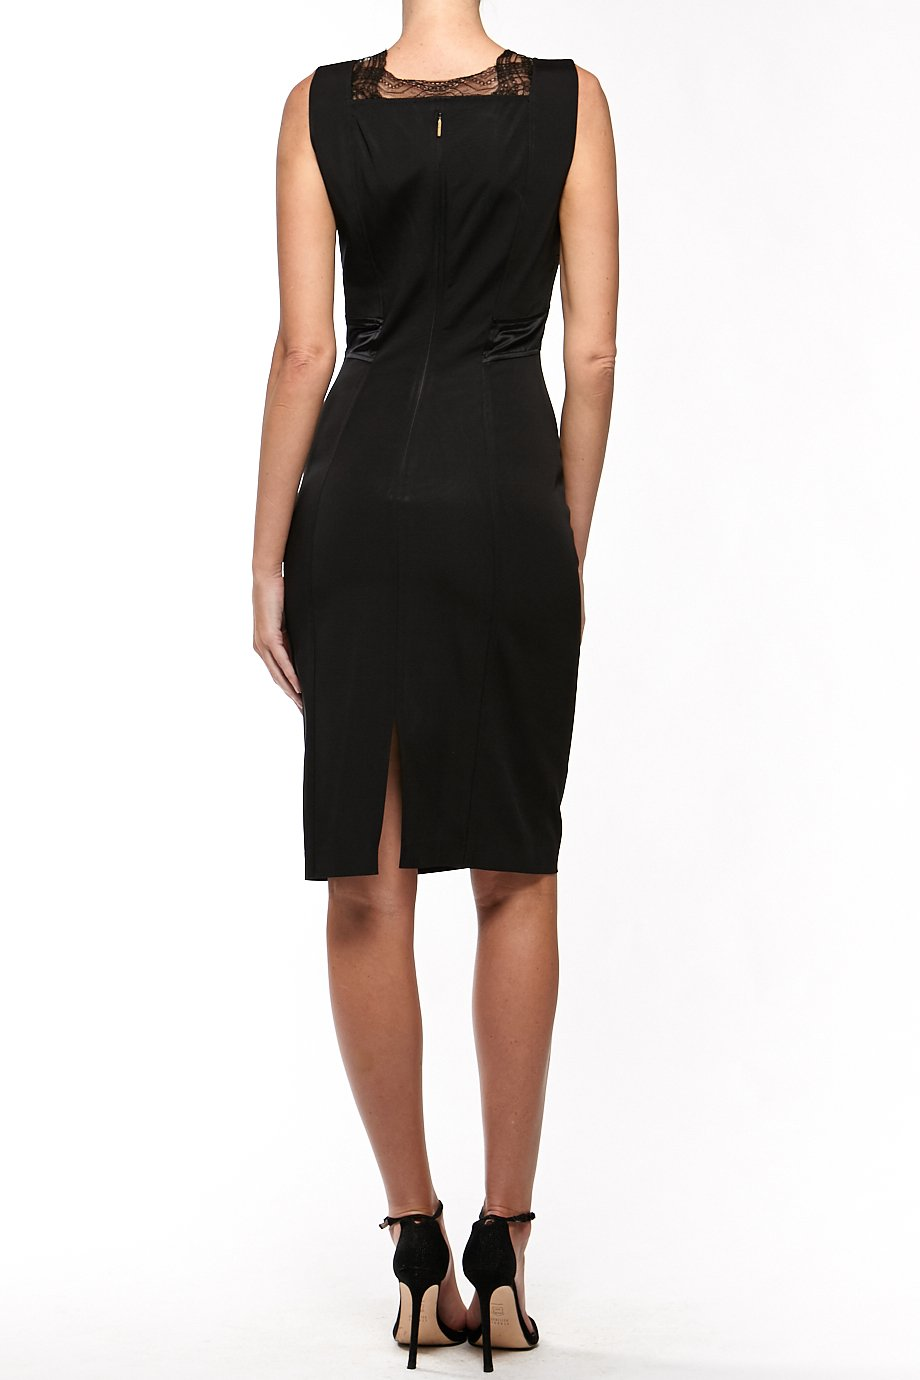 Roberto Cavalli Black Sleeveless V Neck Lace Cocktail Dress